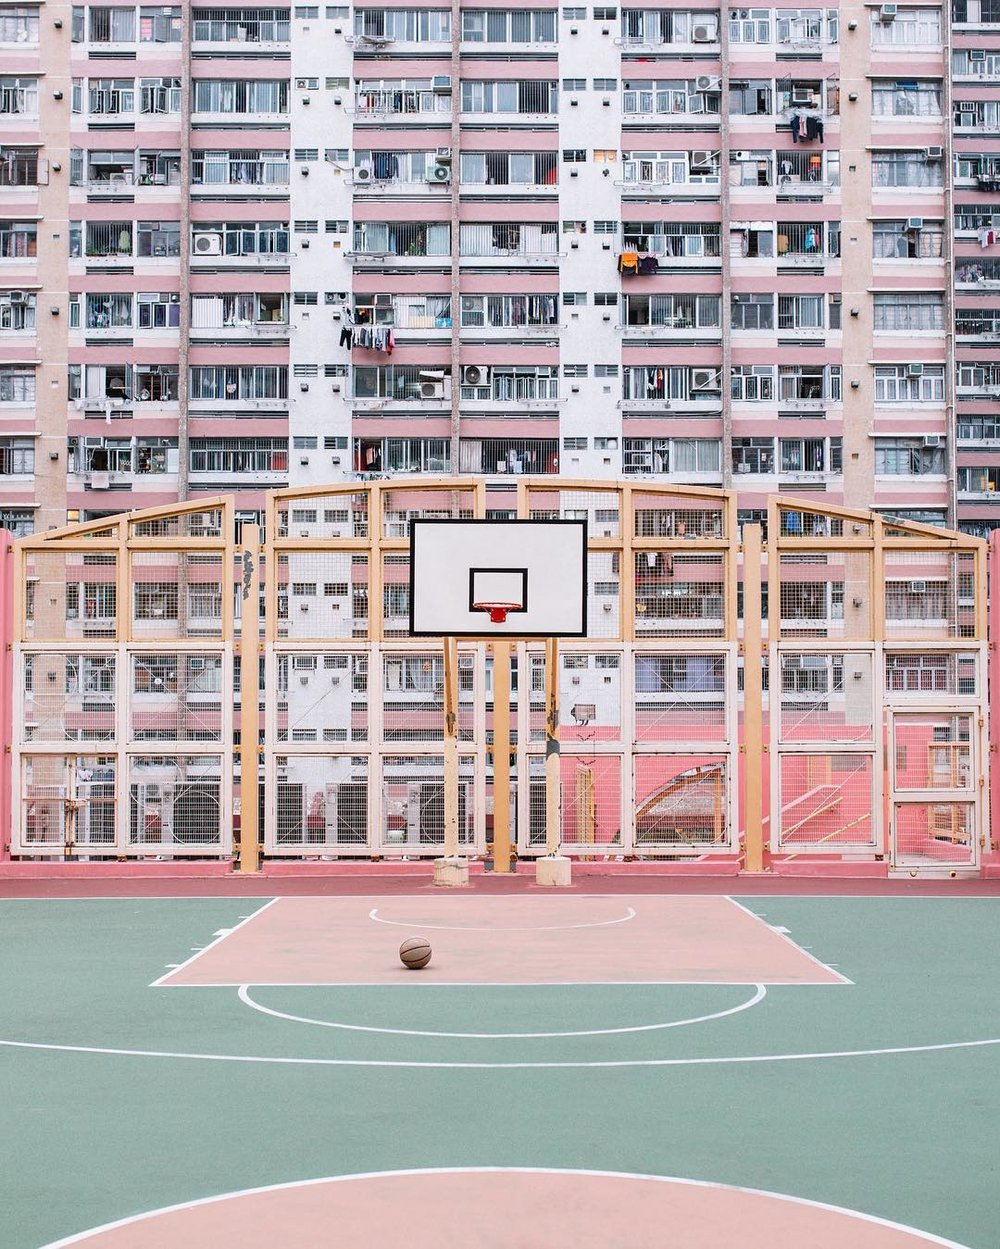 Pink Basketball Court.jpg